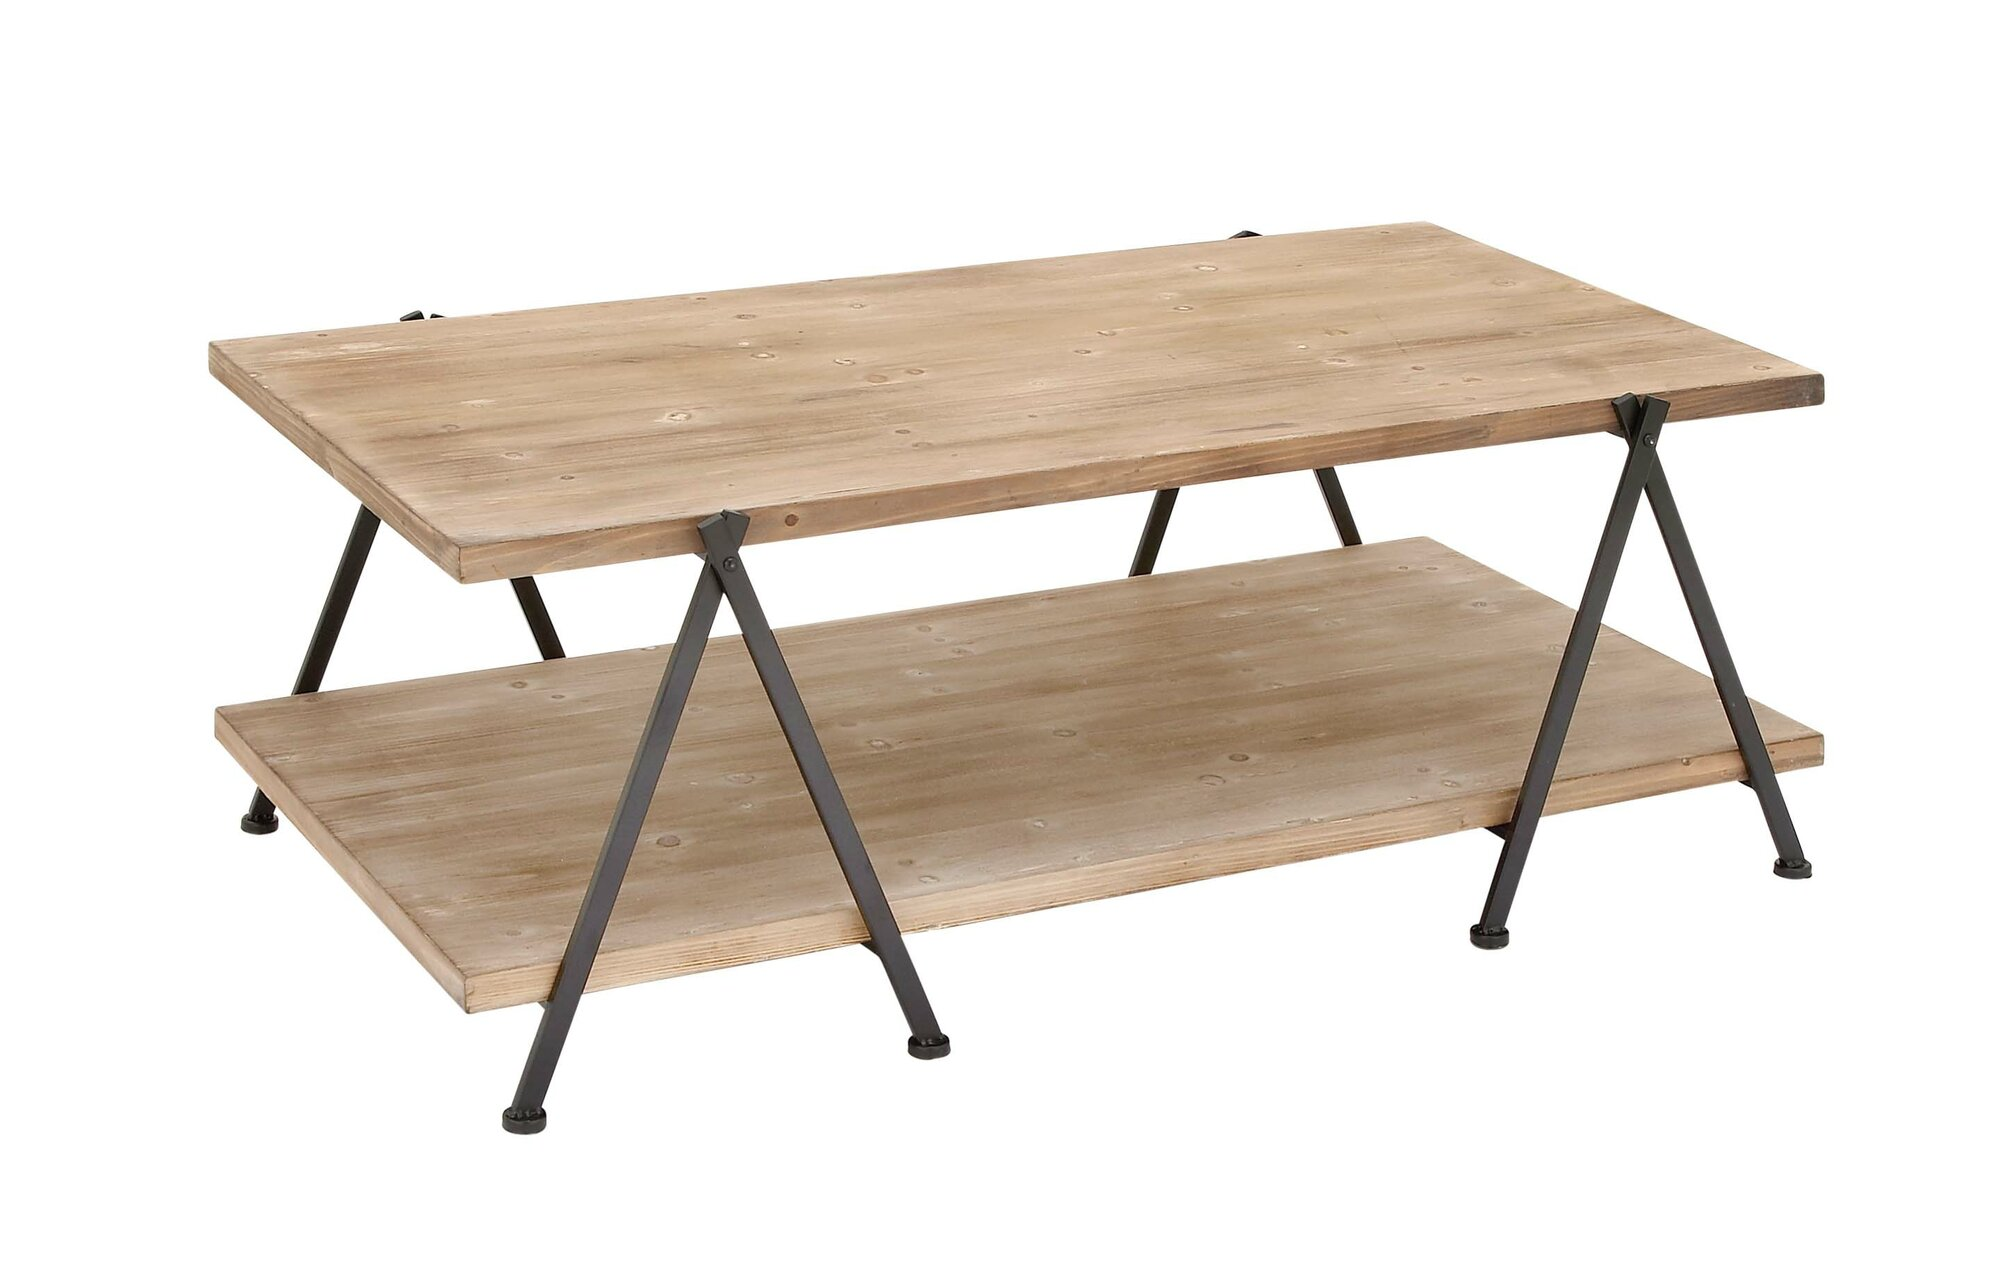 Cole grey wood and metal coffee table cogr9941 ebay for Gray wood and metal coffee table